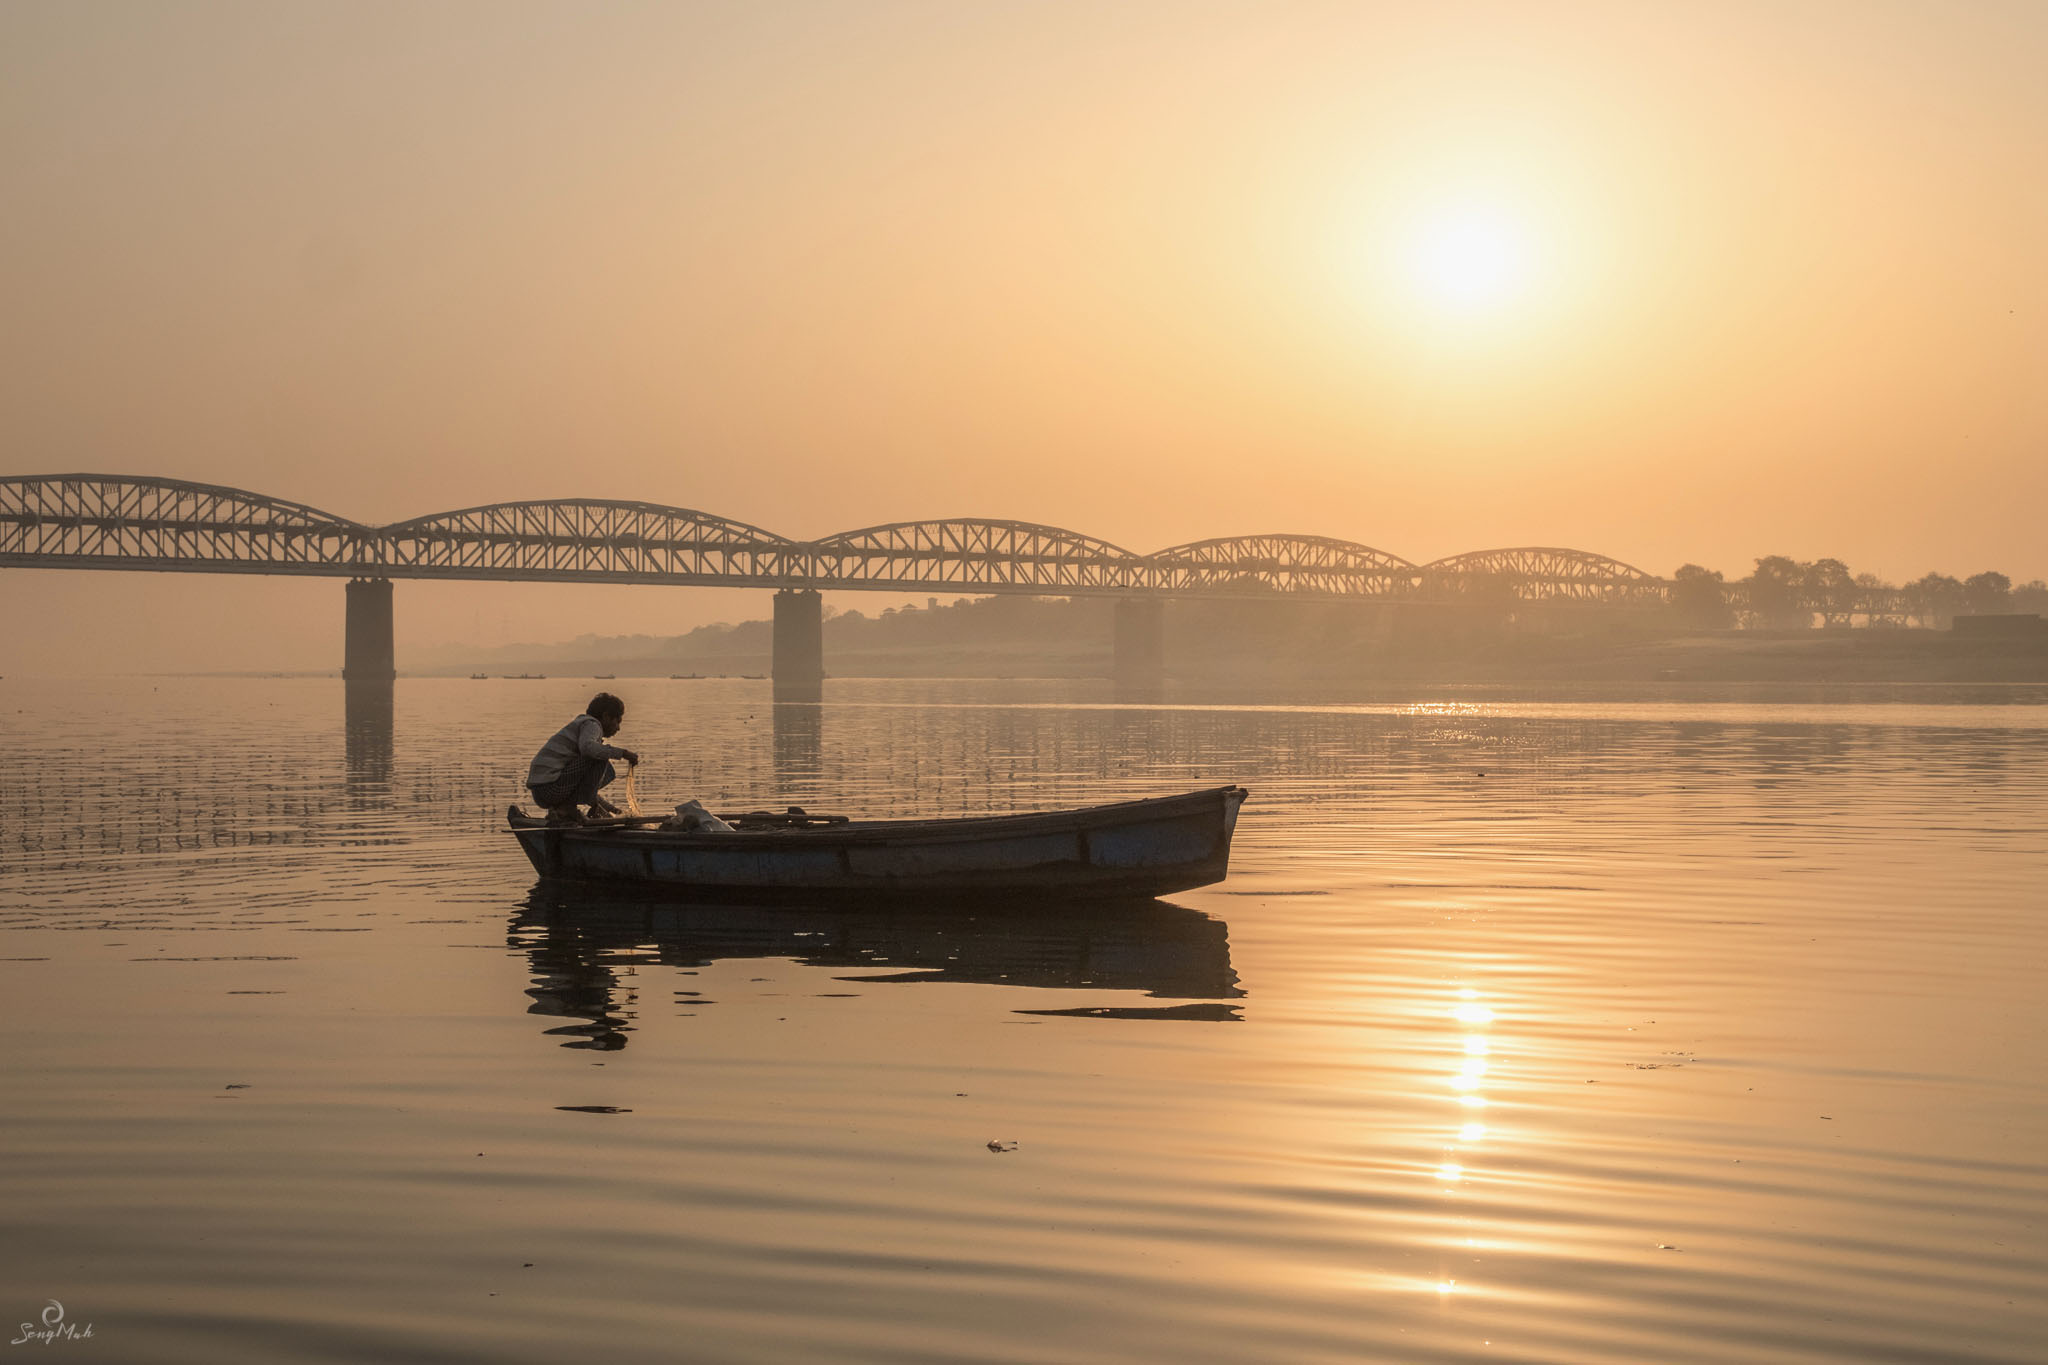 Sunrise over the railway bridge in Varanasi